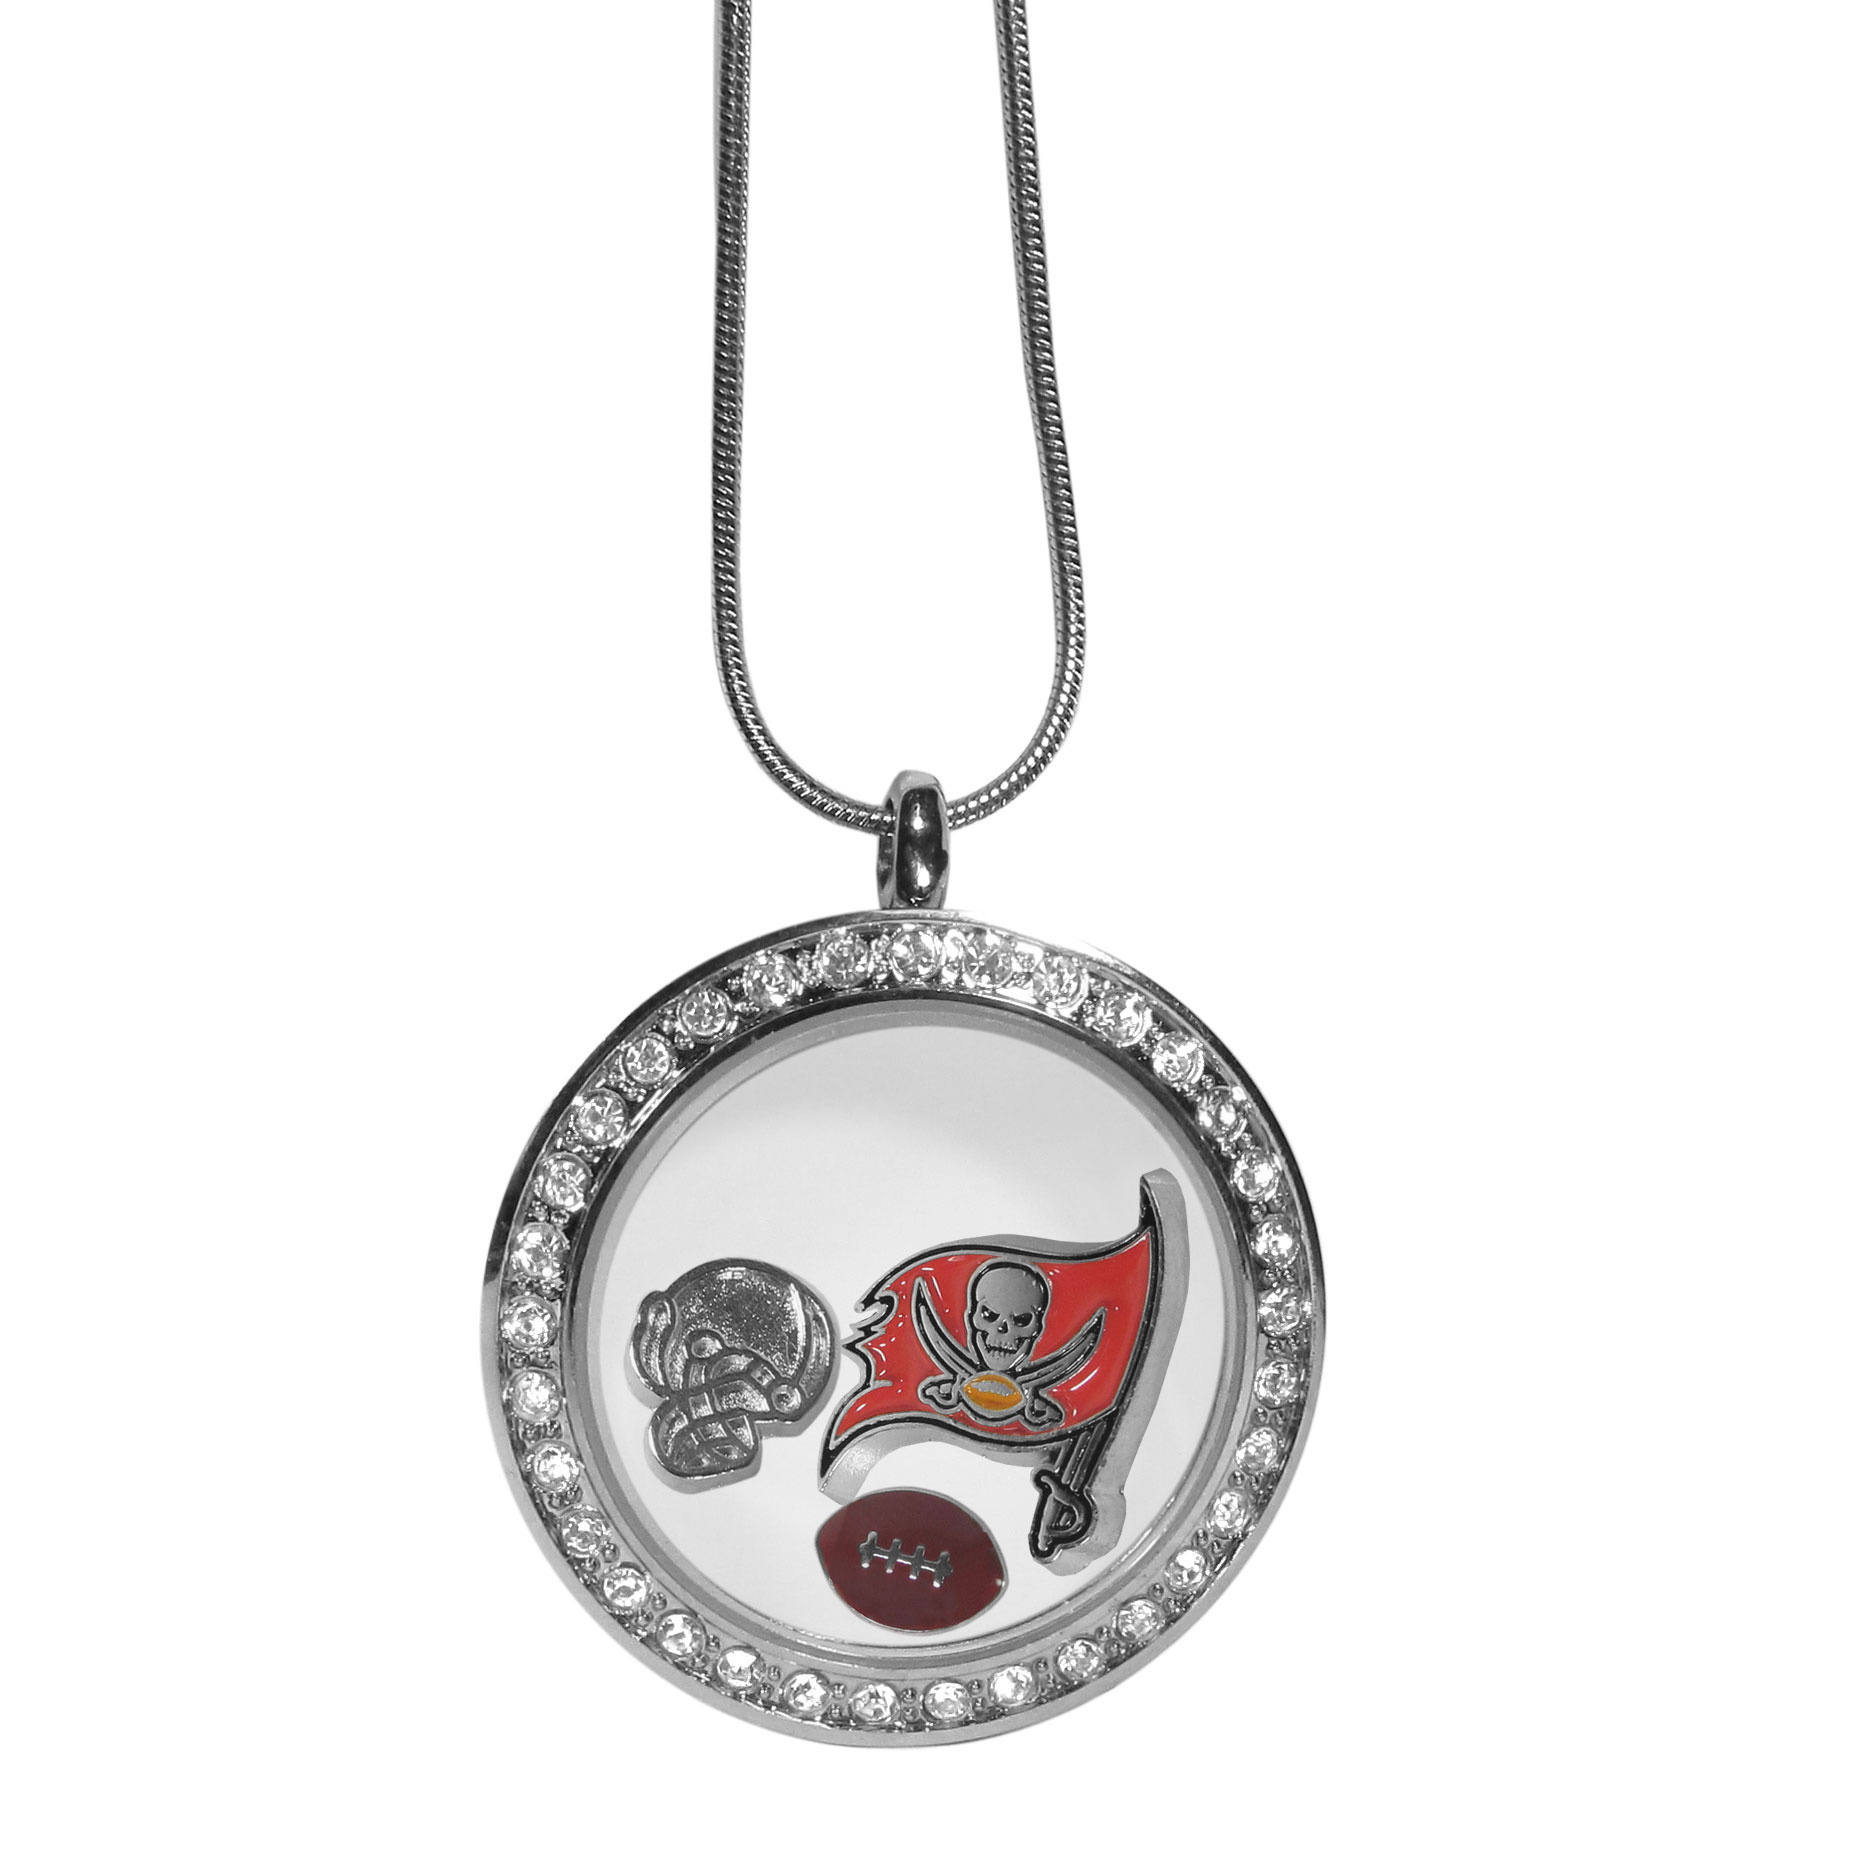 Tampa Bay Buccaneers Locket Necklace - We have taken the classic floating charm locket and combined with licensed sports charms to create a must have fan necklace. The necklace comes with 3 charms; 1 Tampa Bay Buccaneers charm, one football charm and one helmet charm. The charms float in a beautiful locket that has a strong magnetic closure with a rhinestone border. The locket comes on an 18 inch snake chain with 2 inch extender.